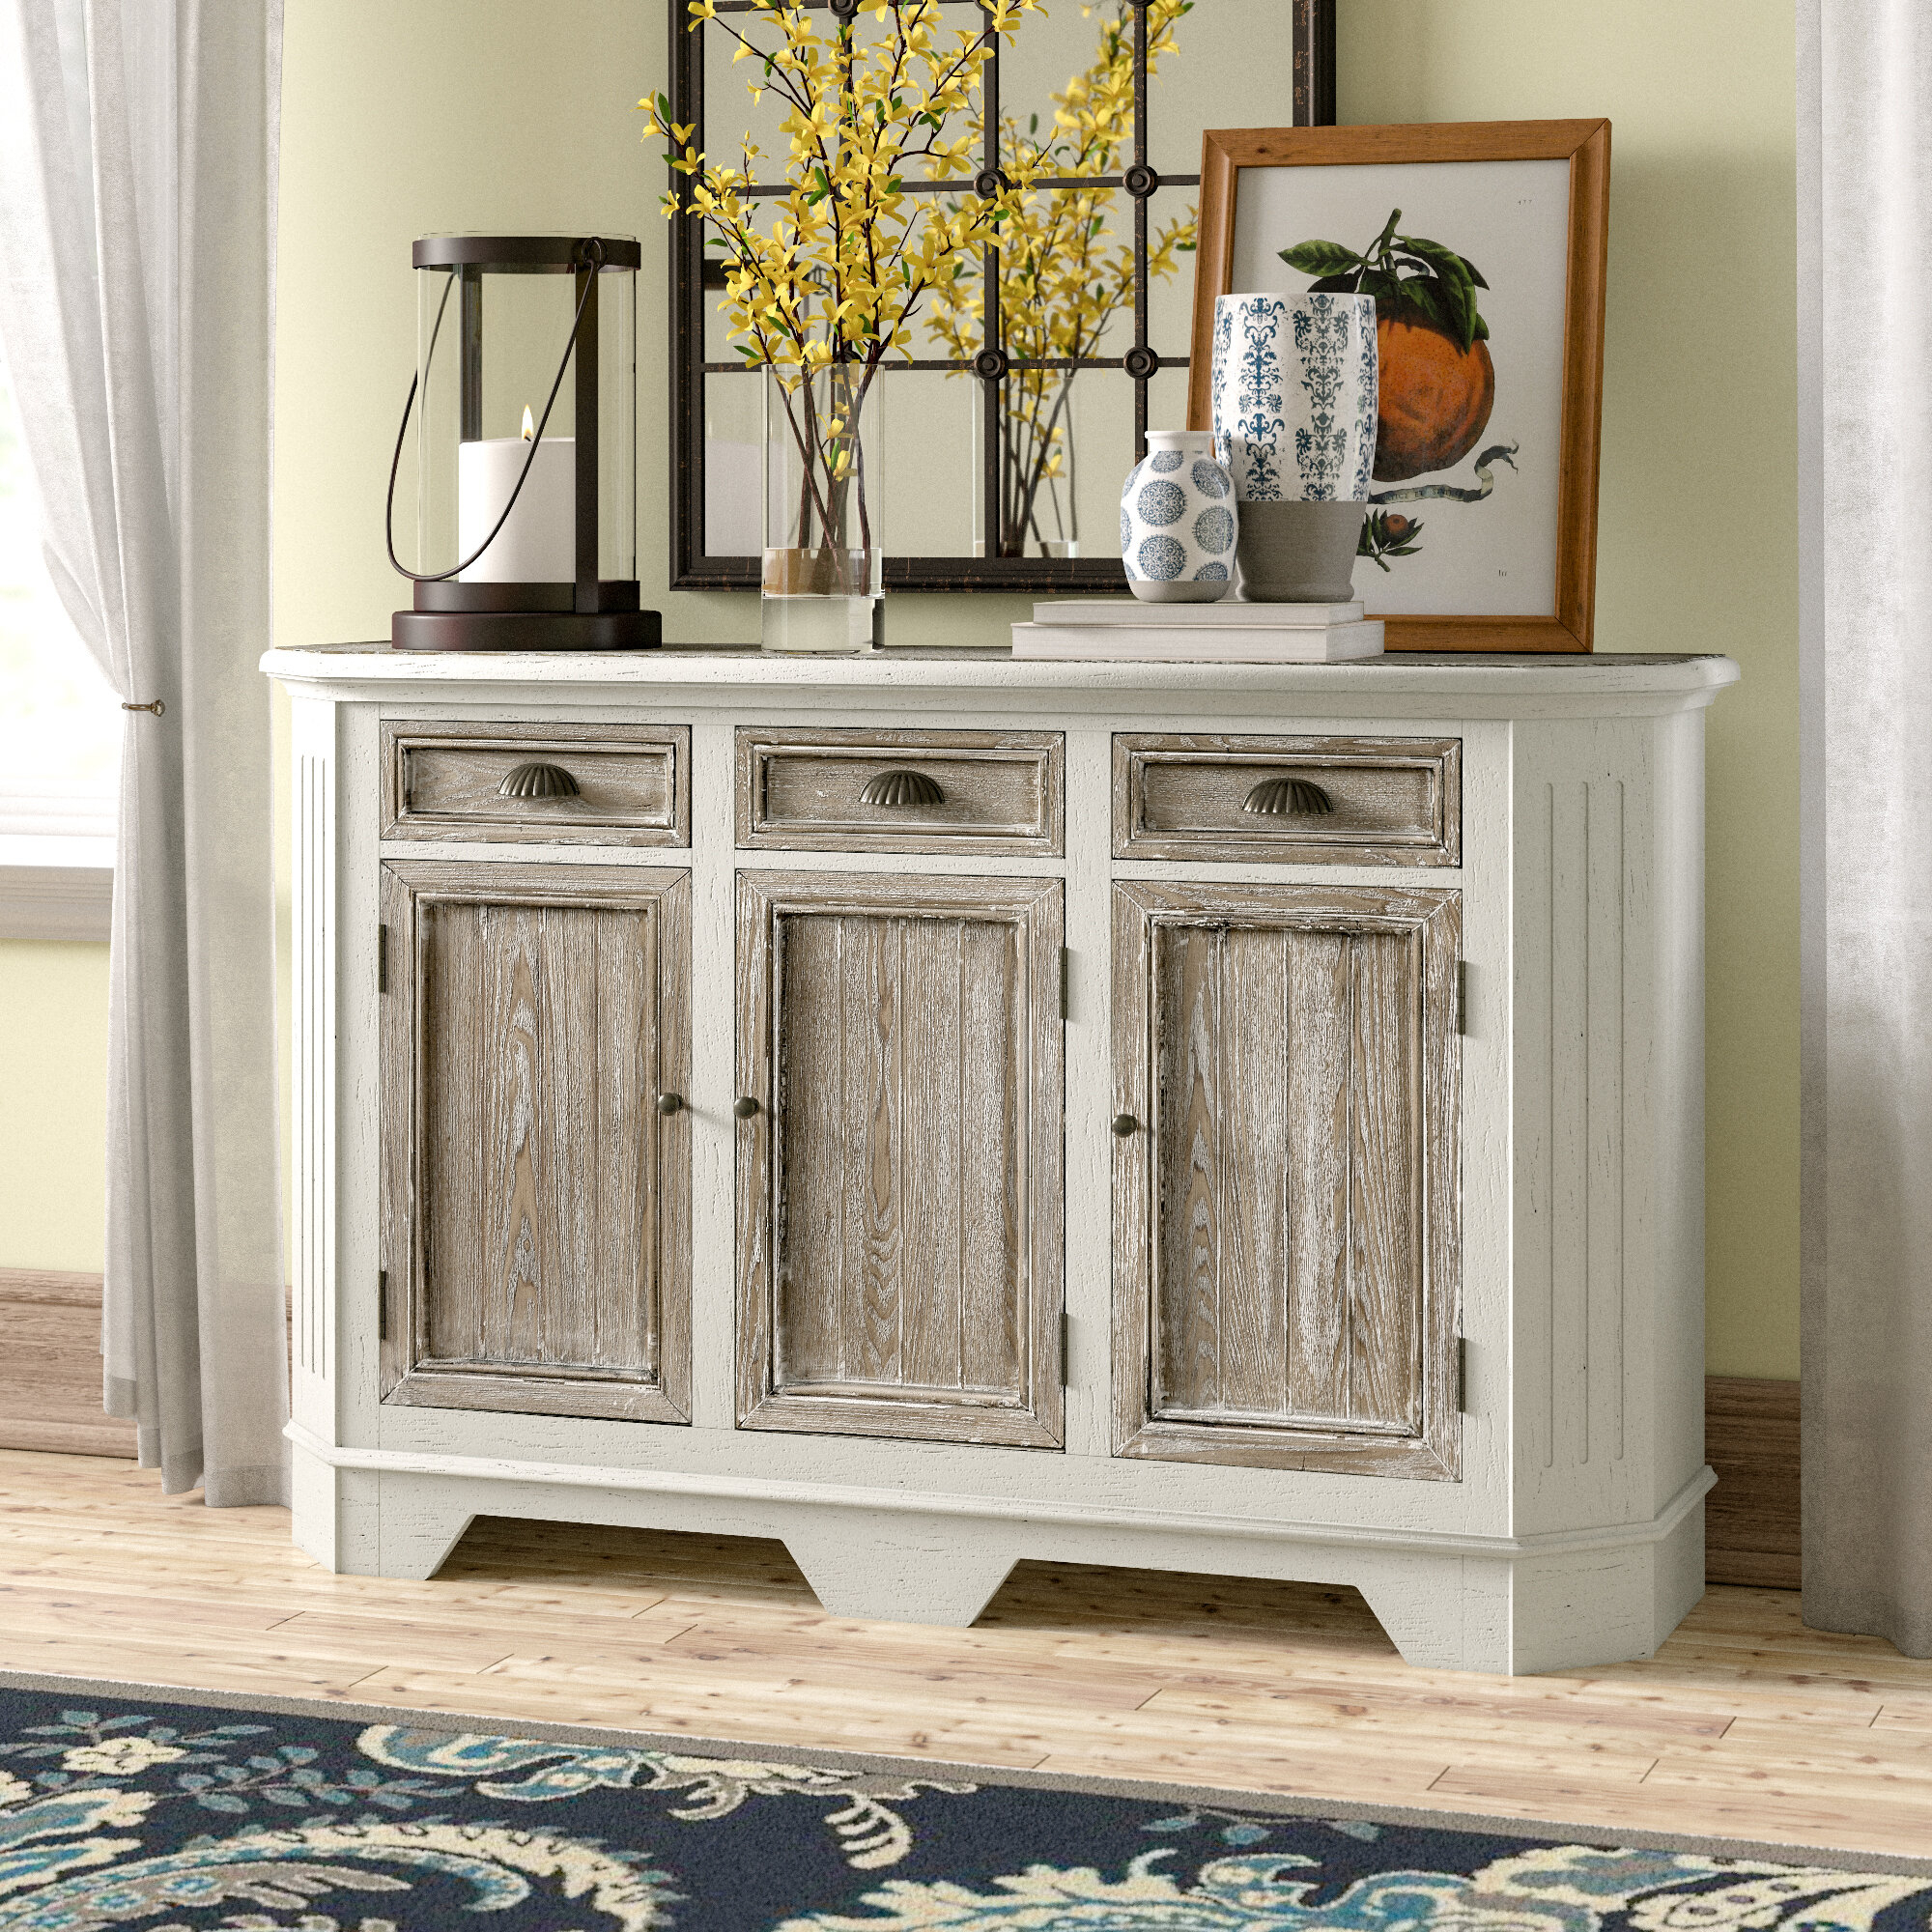 Funkhouser 3 Door 3 Drawer Sideboard Intended For Tiphaine Sideboards (View 18 of 30)